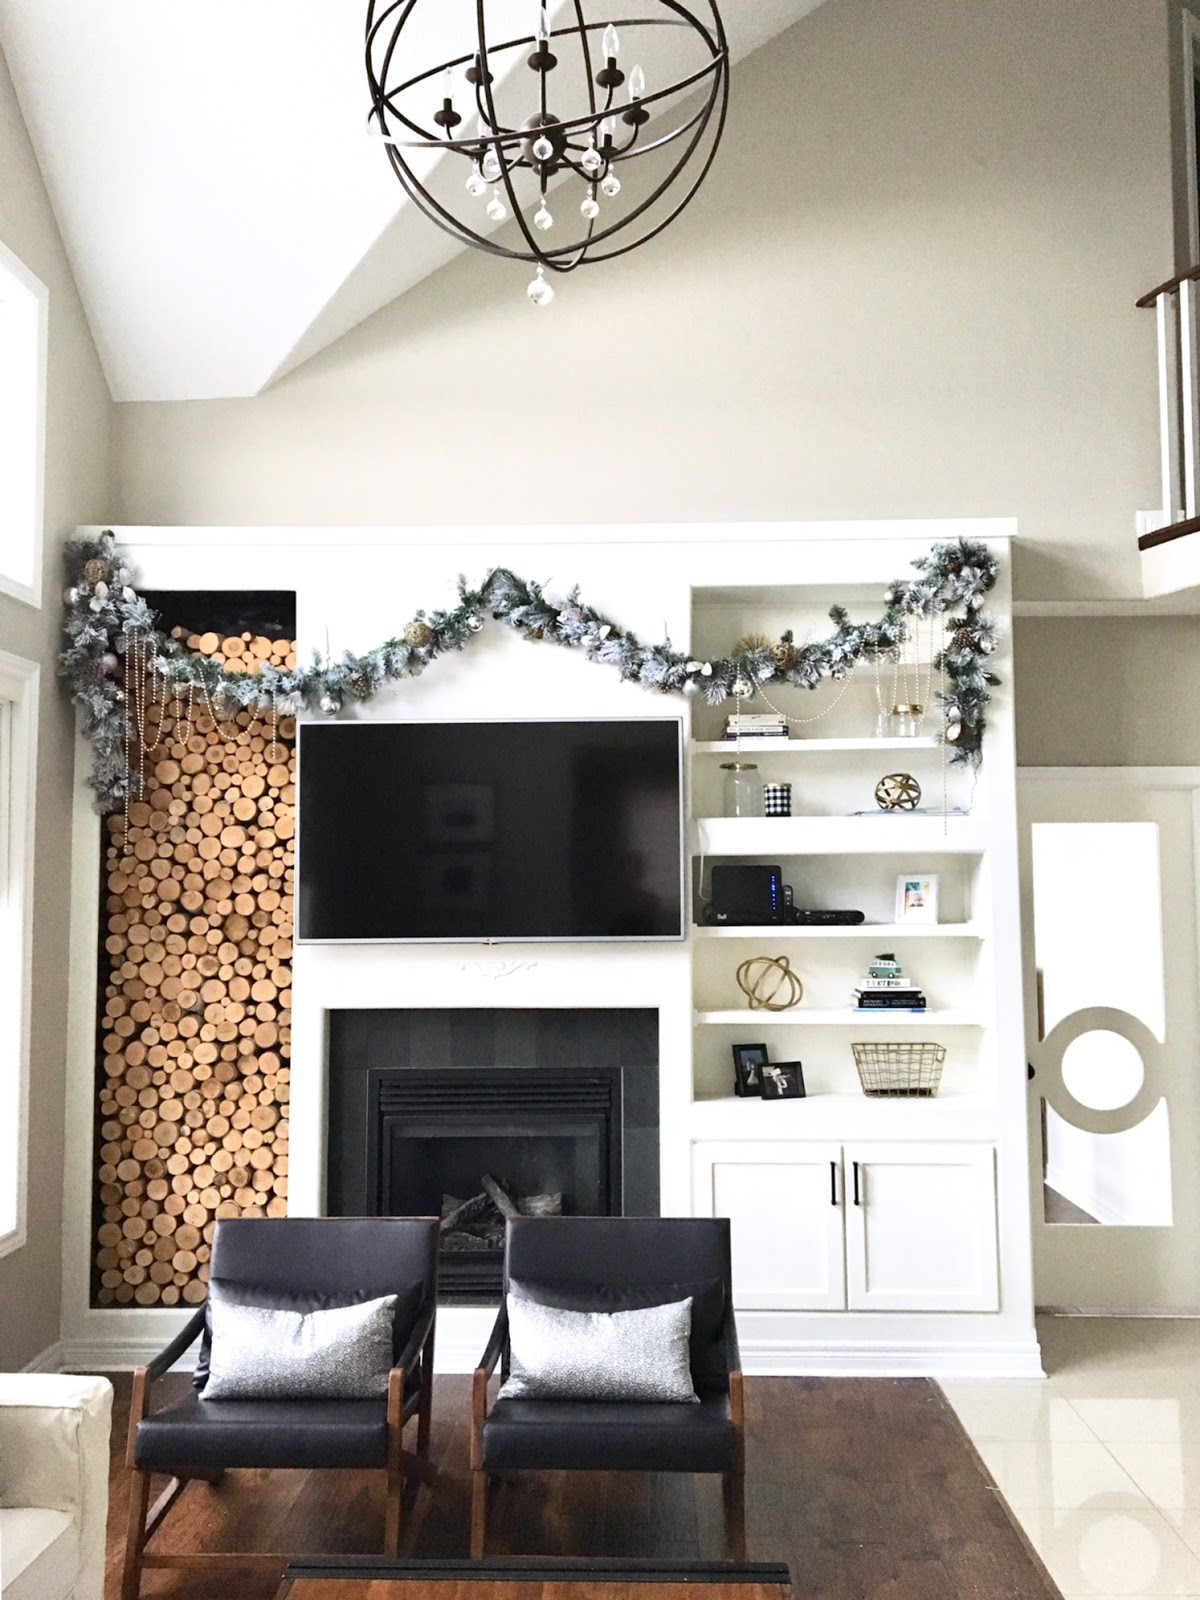 Modern Holiday Home: Holiday Decorating Ideas | Harlow & Thistle ...